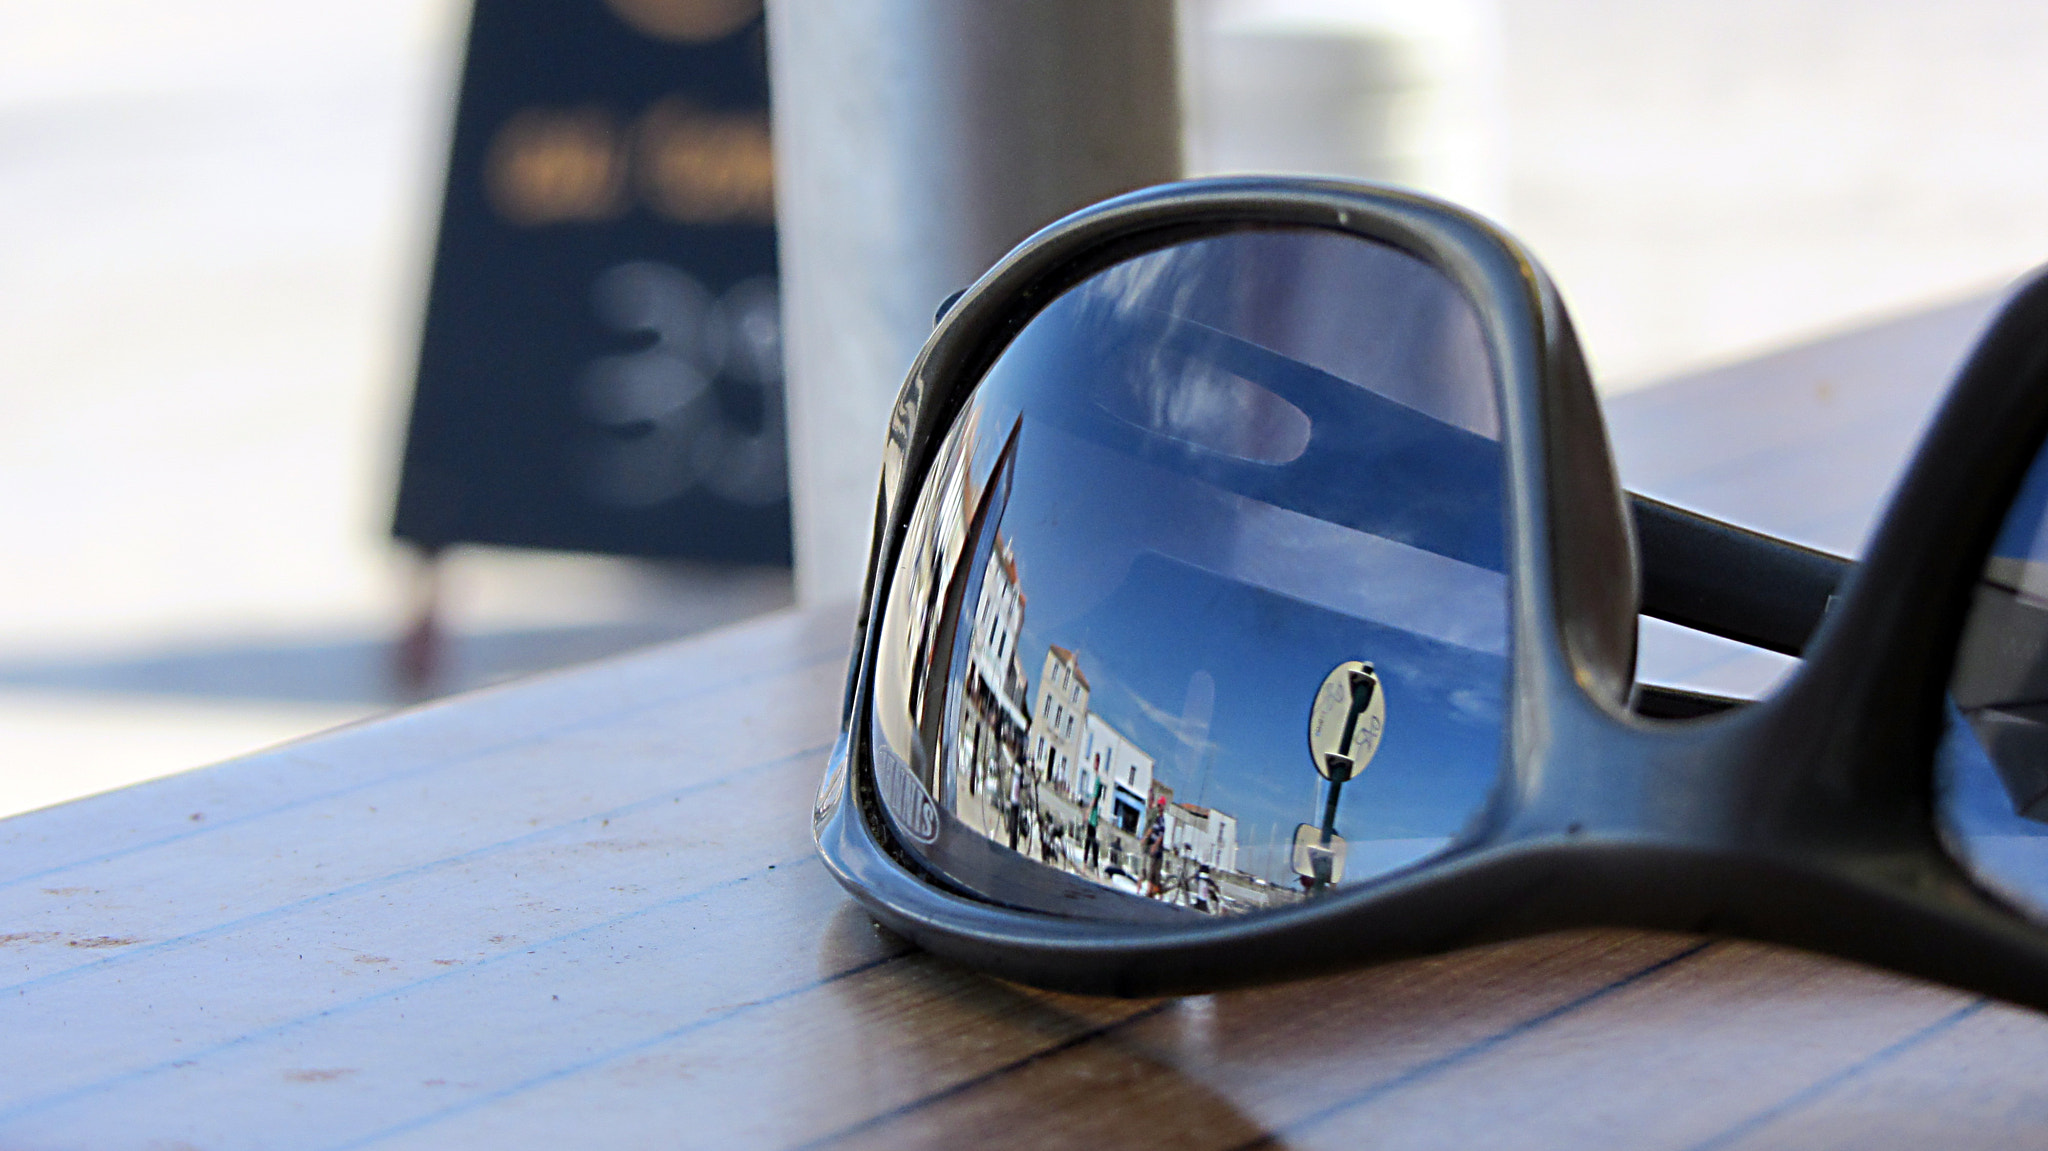 Photograph Reflection by Martijn Barendregt on 500px